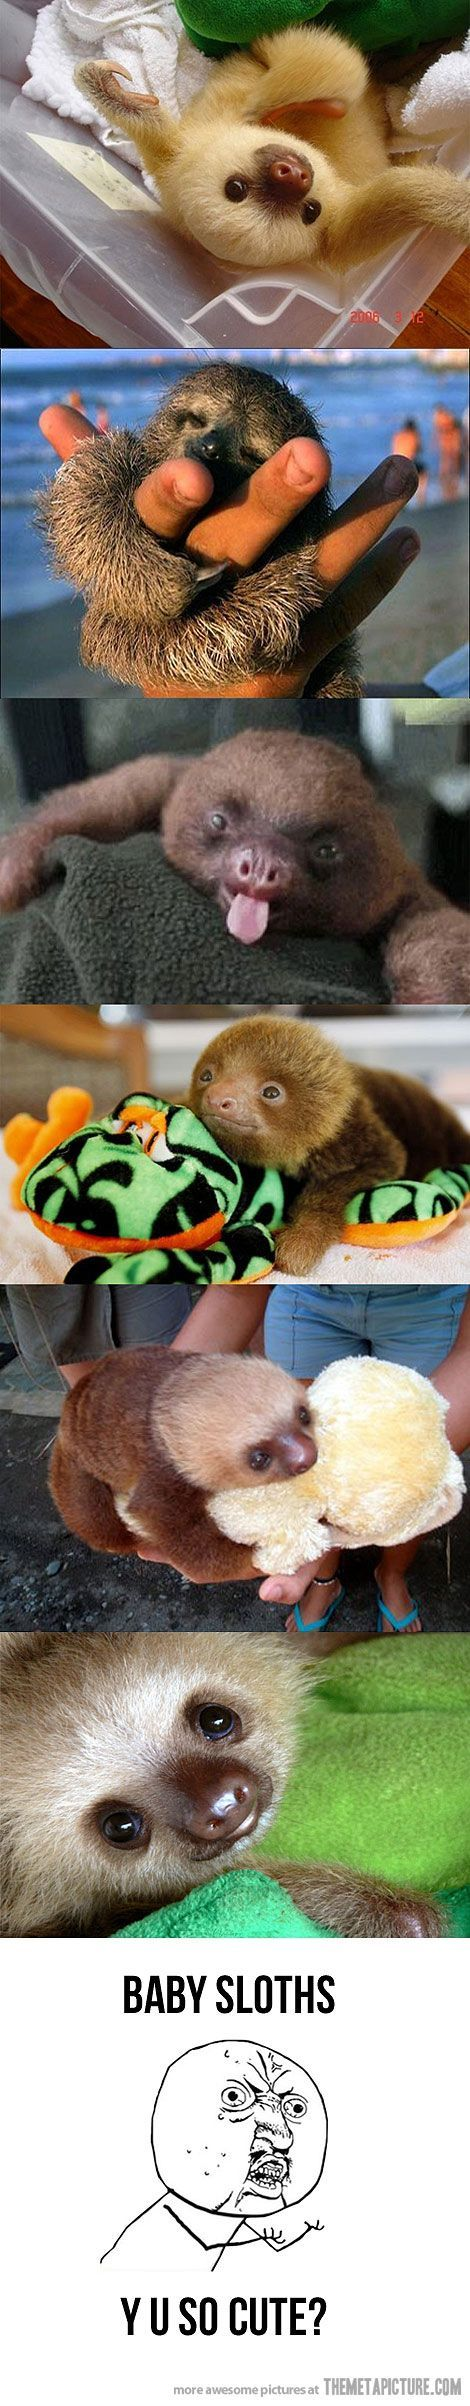 Baby sloths - i could do without the y u   no guy but they're still too adorable to pass up.